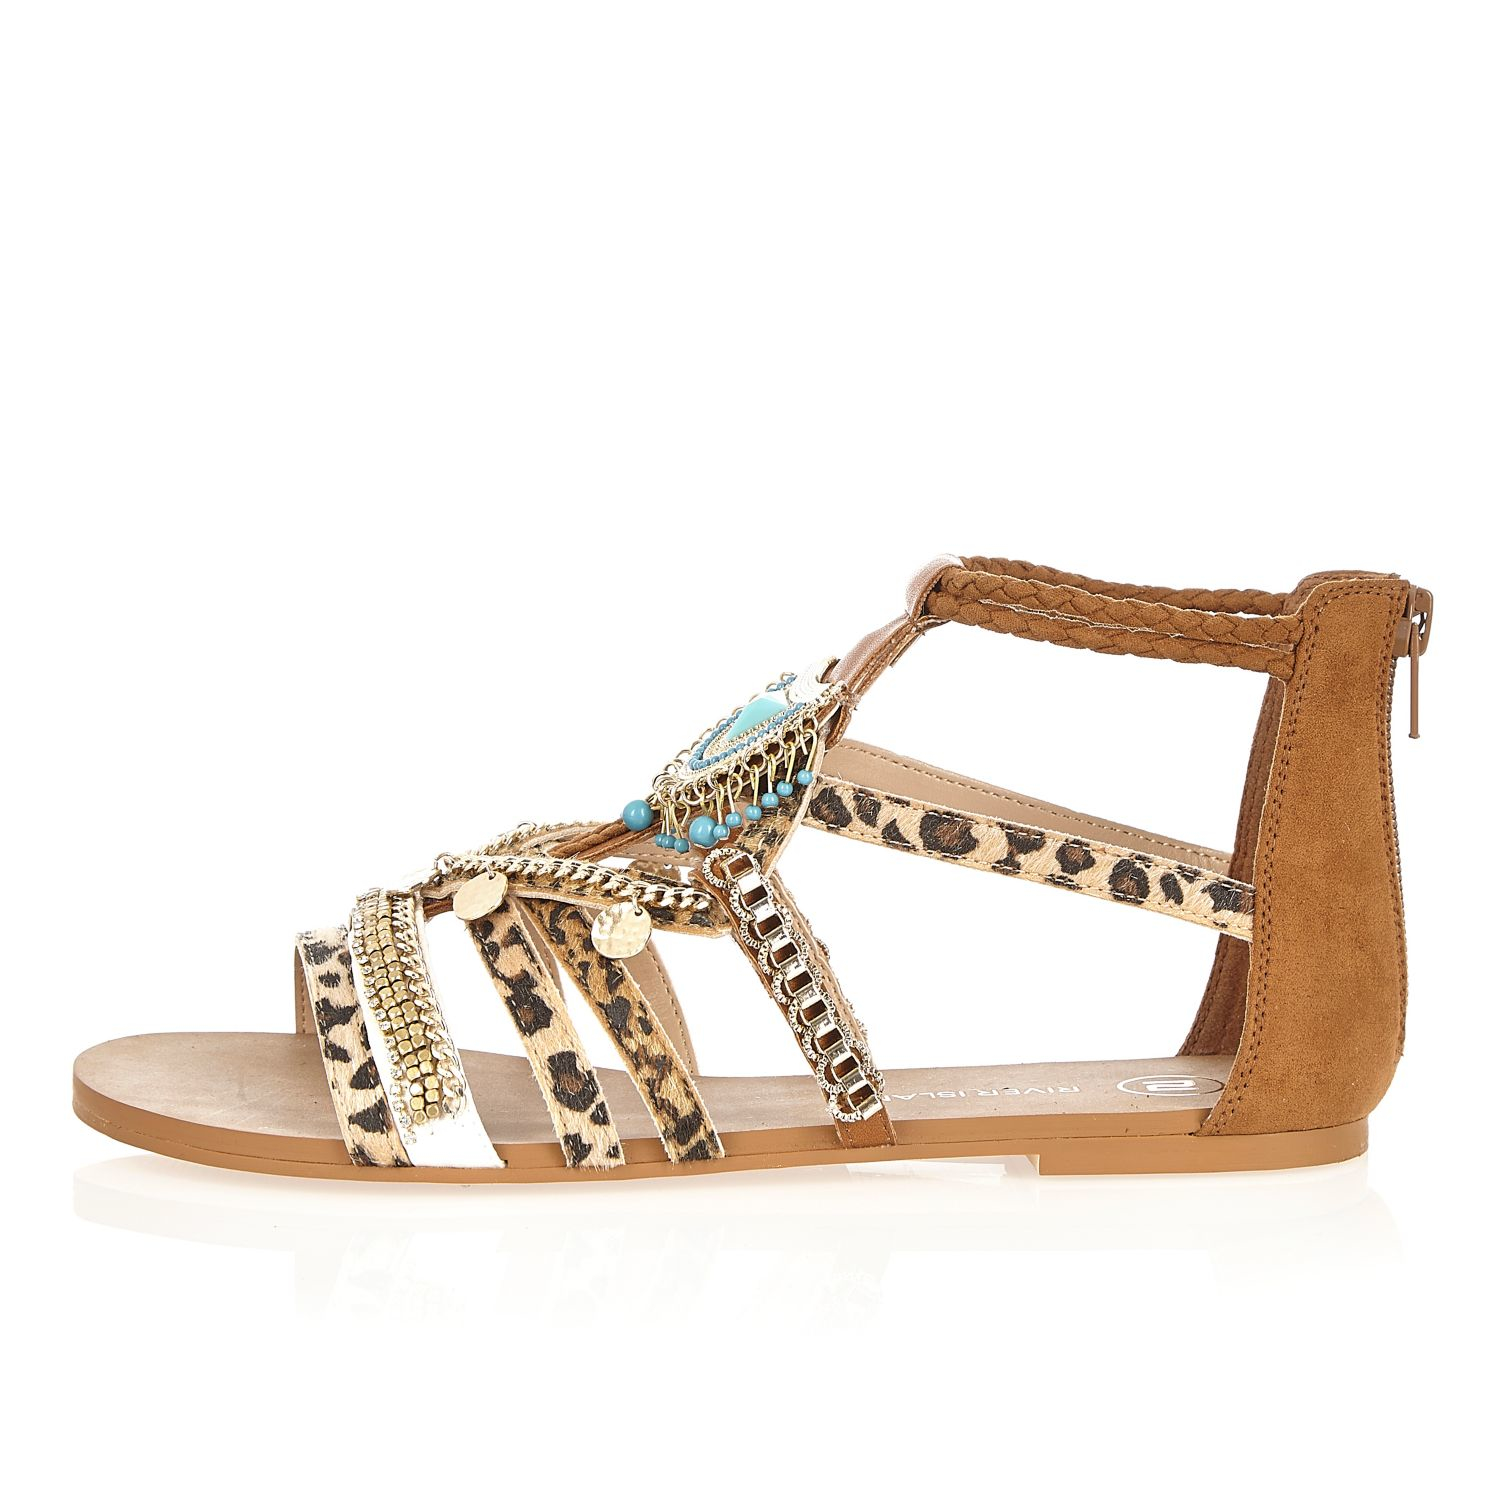 e9e2be6e0b971a Lyst - River Island Brown Embellished Leopard Print Sandals in Brown